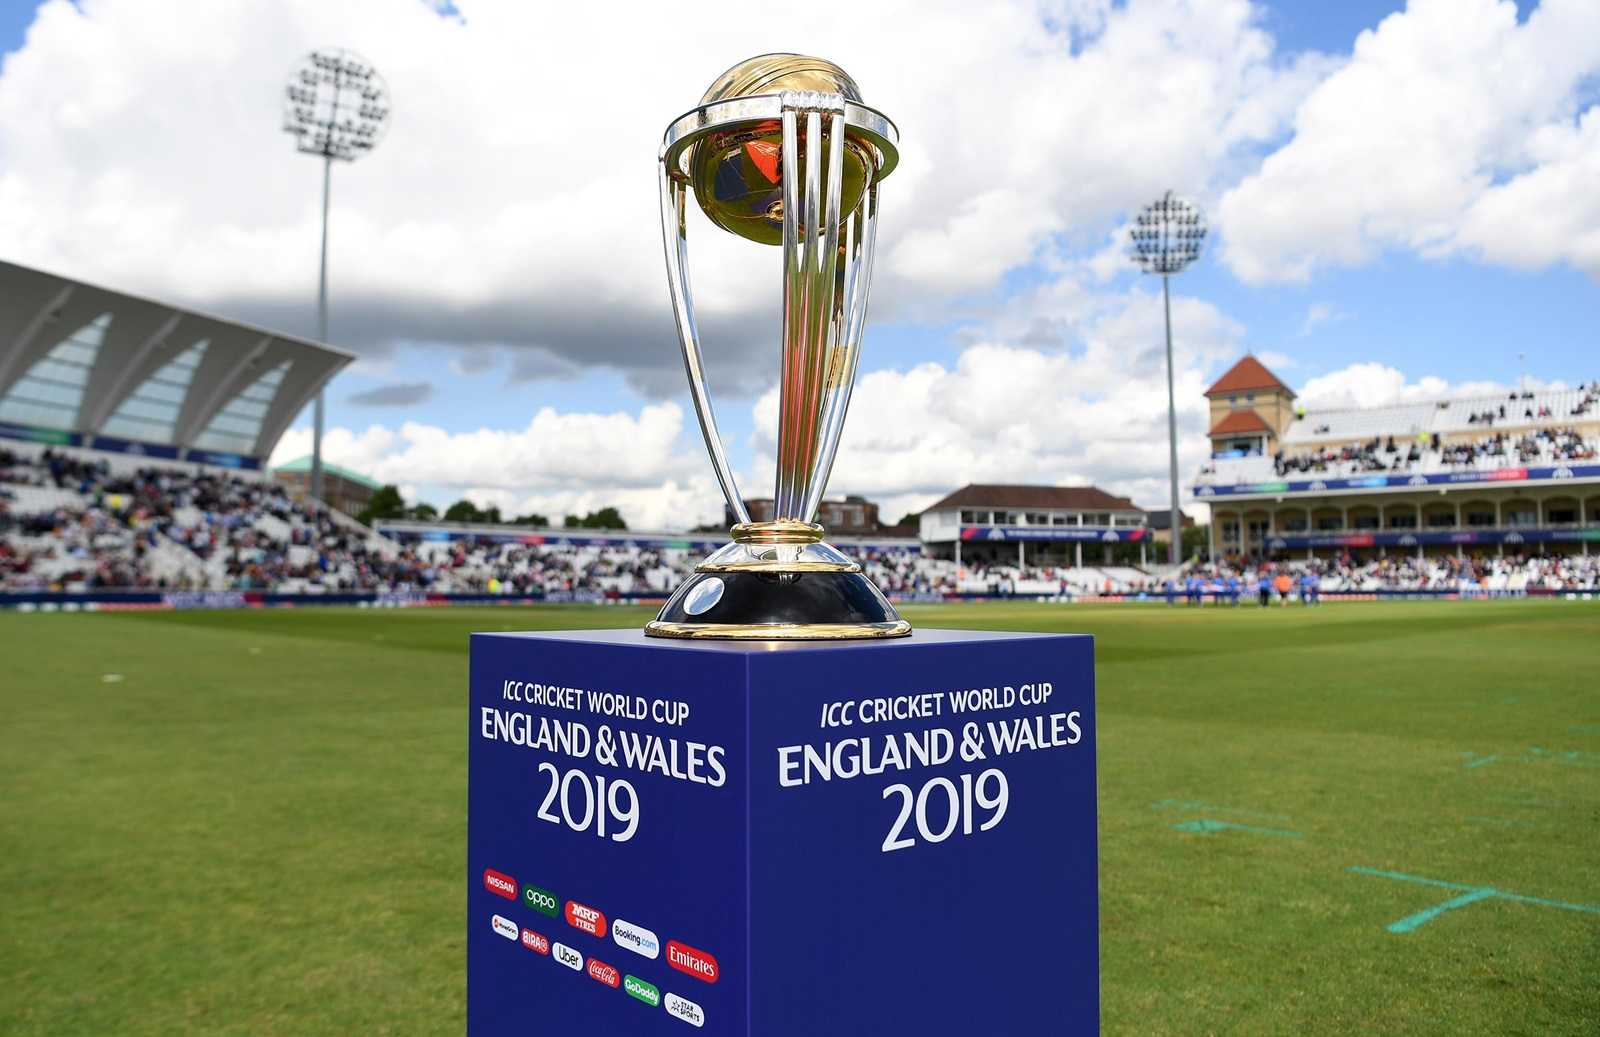 new-zealand-set-england-242-to-win-world-cup-2019